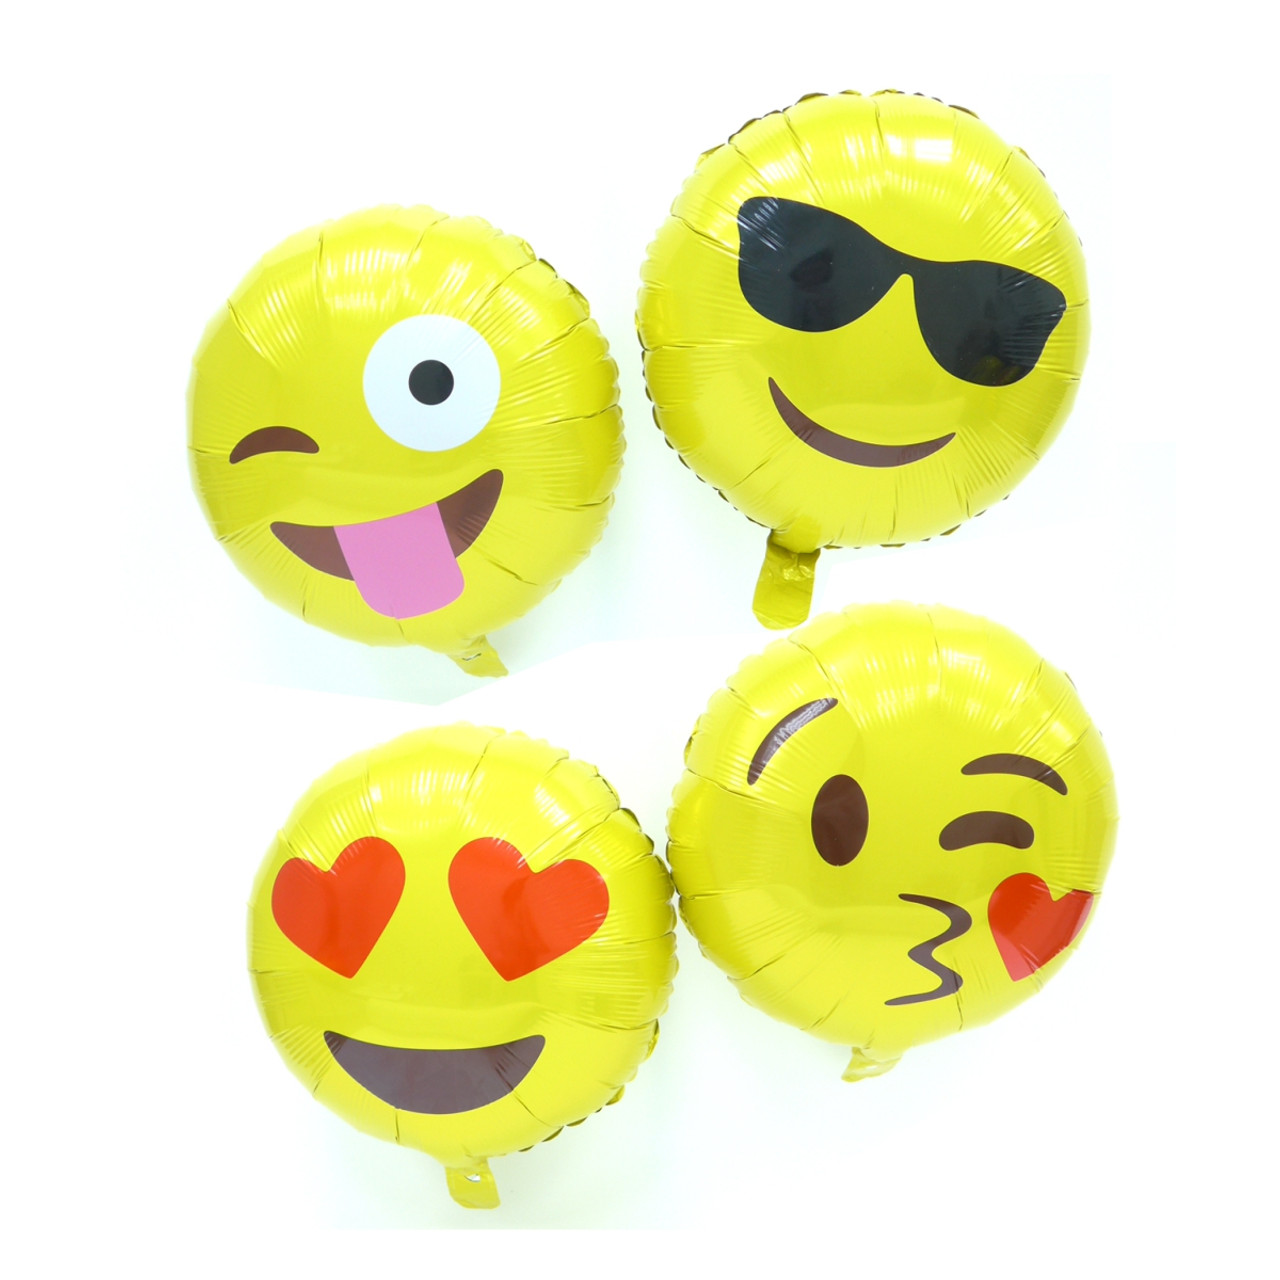 16 inch emoji balloons sunglasses smooch crazy love happymoments